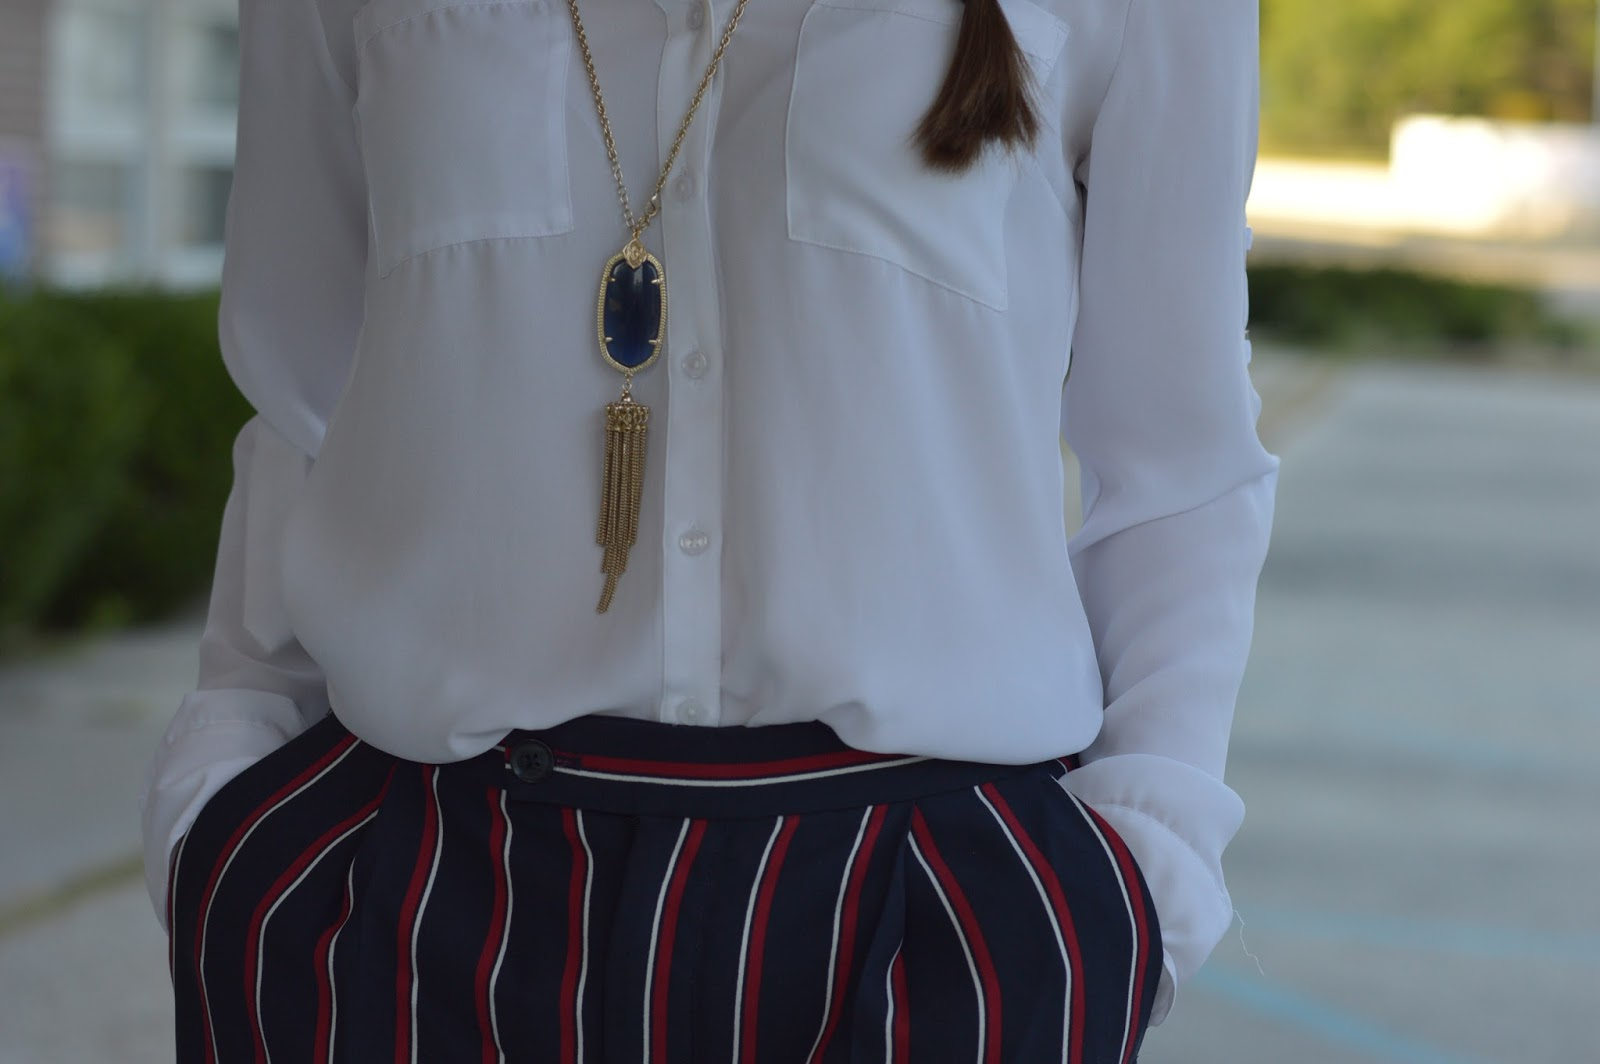 kendra scott rayne necklace in navy | what to wear with a rayne necklace | banana republic dress pants review | striped dress pants | what to wear to work |